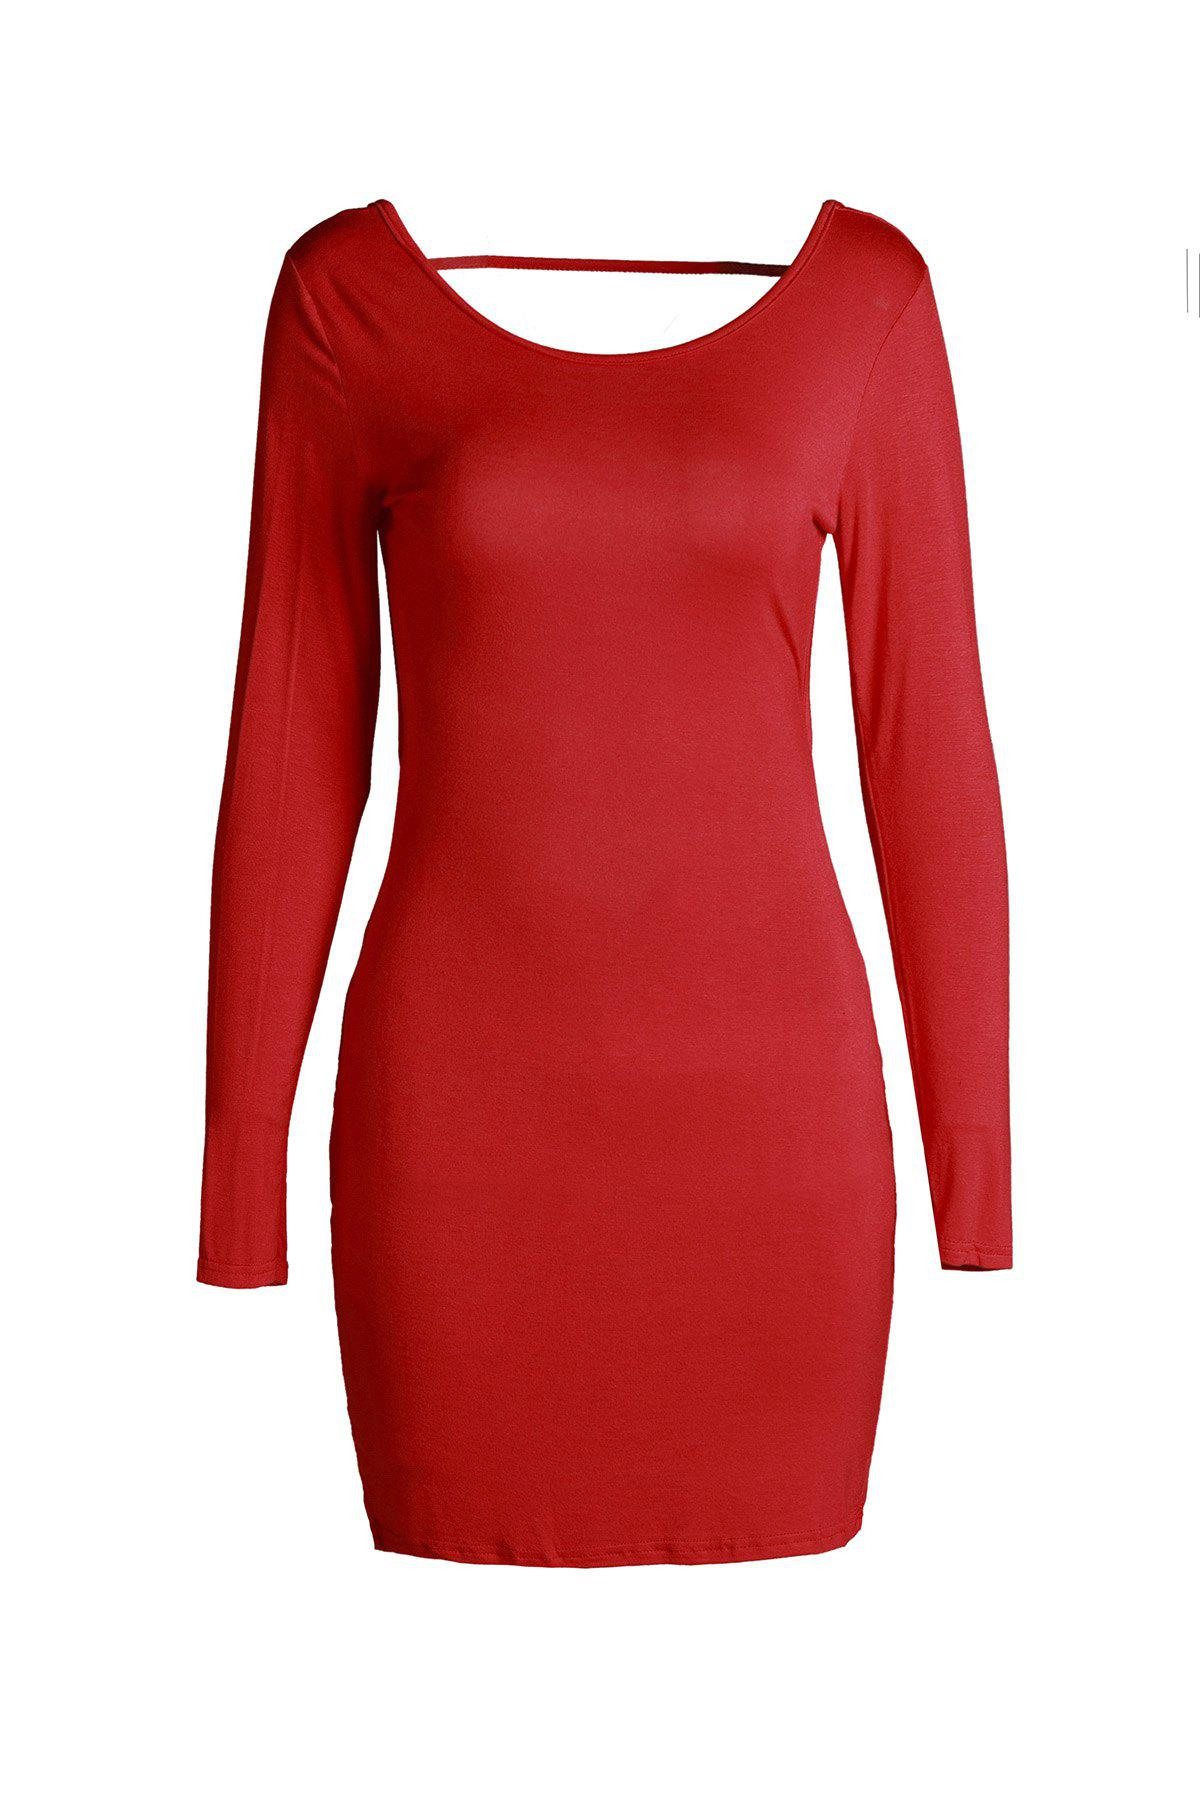 Sexy Long Sleeve Bodycon Red Backless Dress For Women - RED S